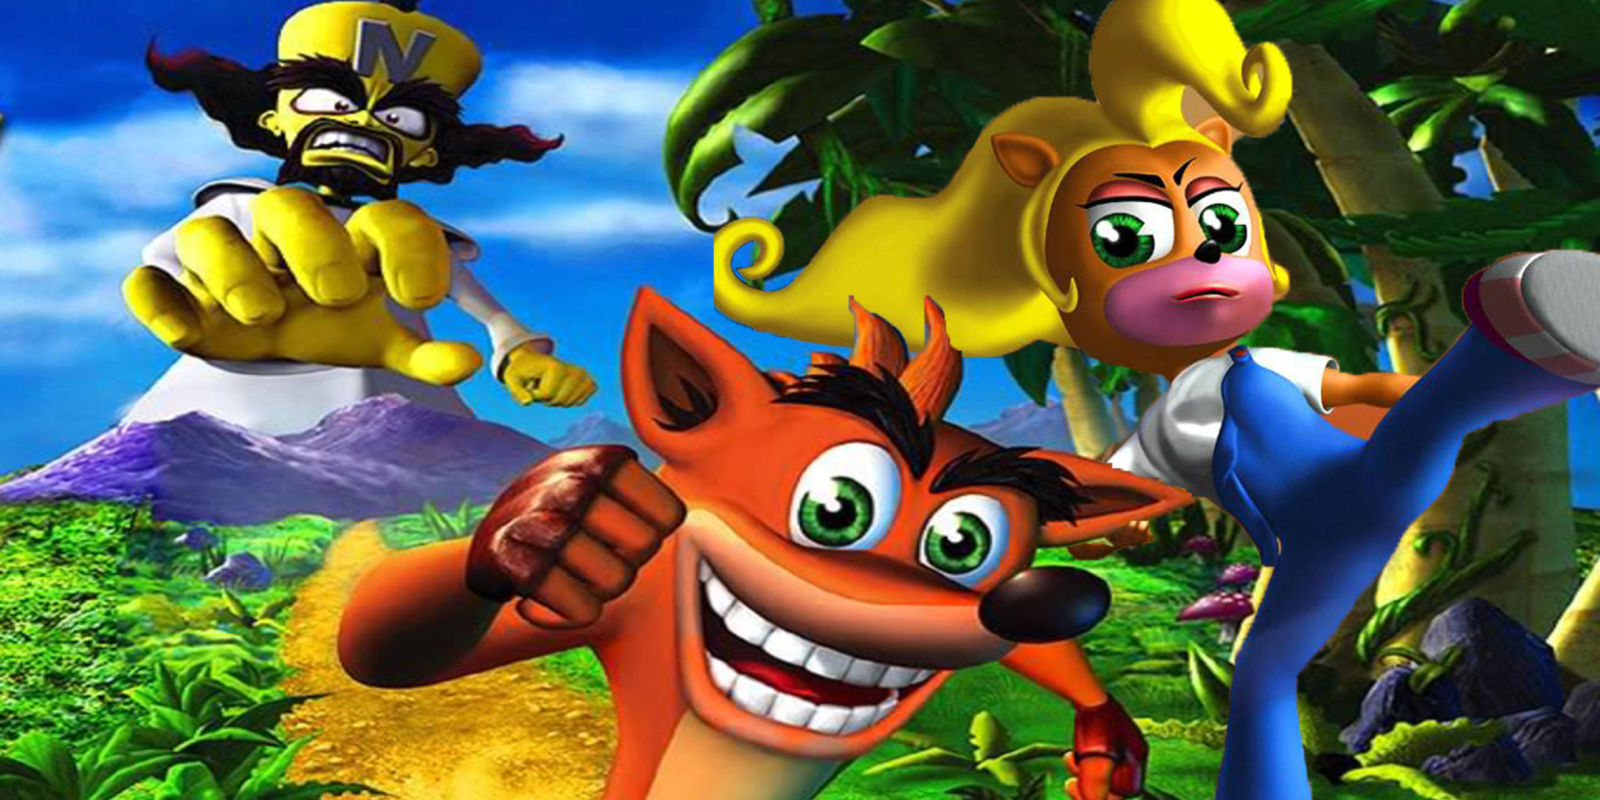 can you name these classic crash bandicoot characters